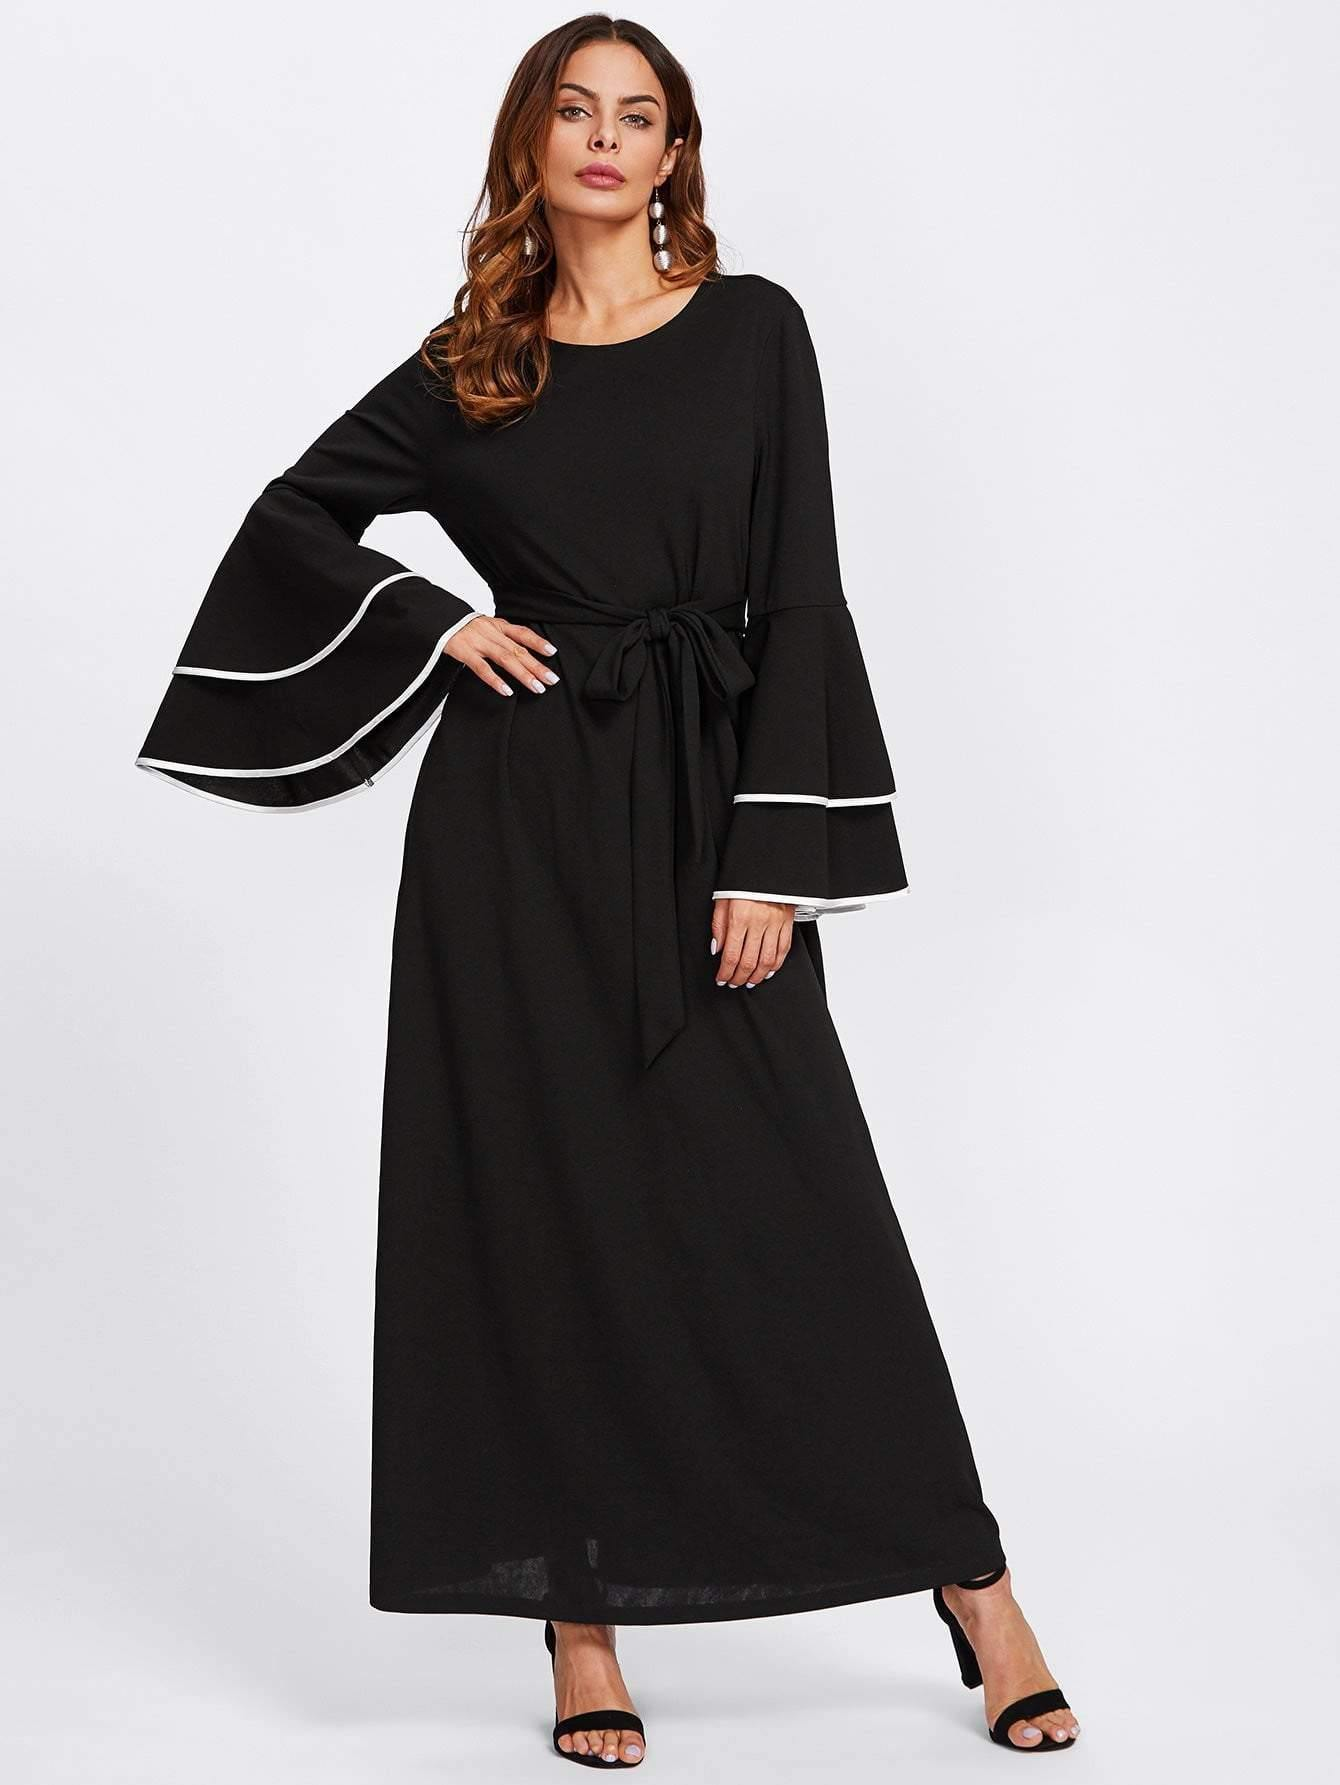 Contrast Binding Layered Sleeve Hijab Evening Dress - Dresses - Zooomberg - Zoomberg